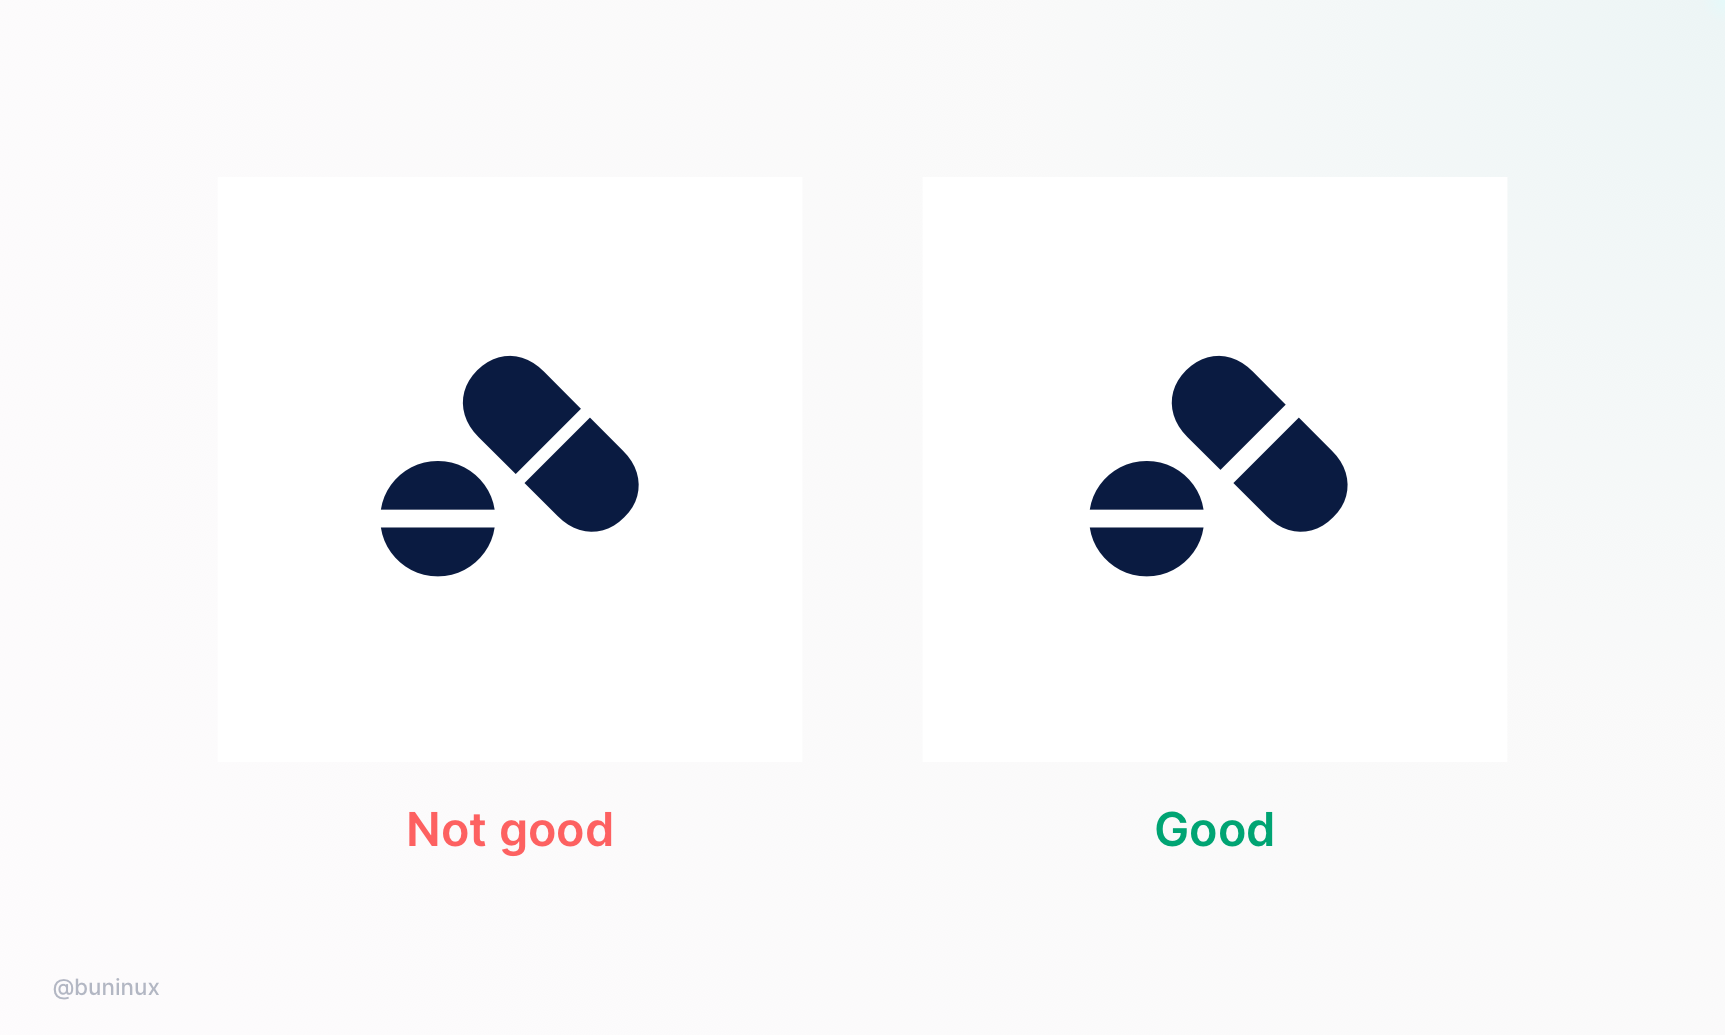 Equal spacing in icons